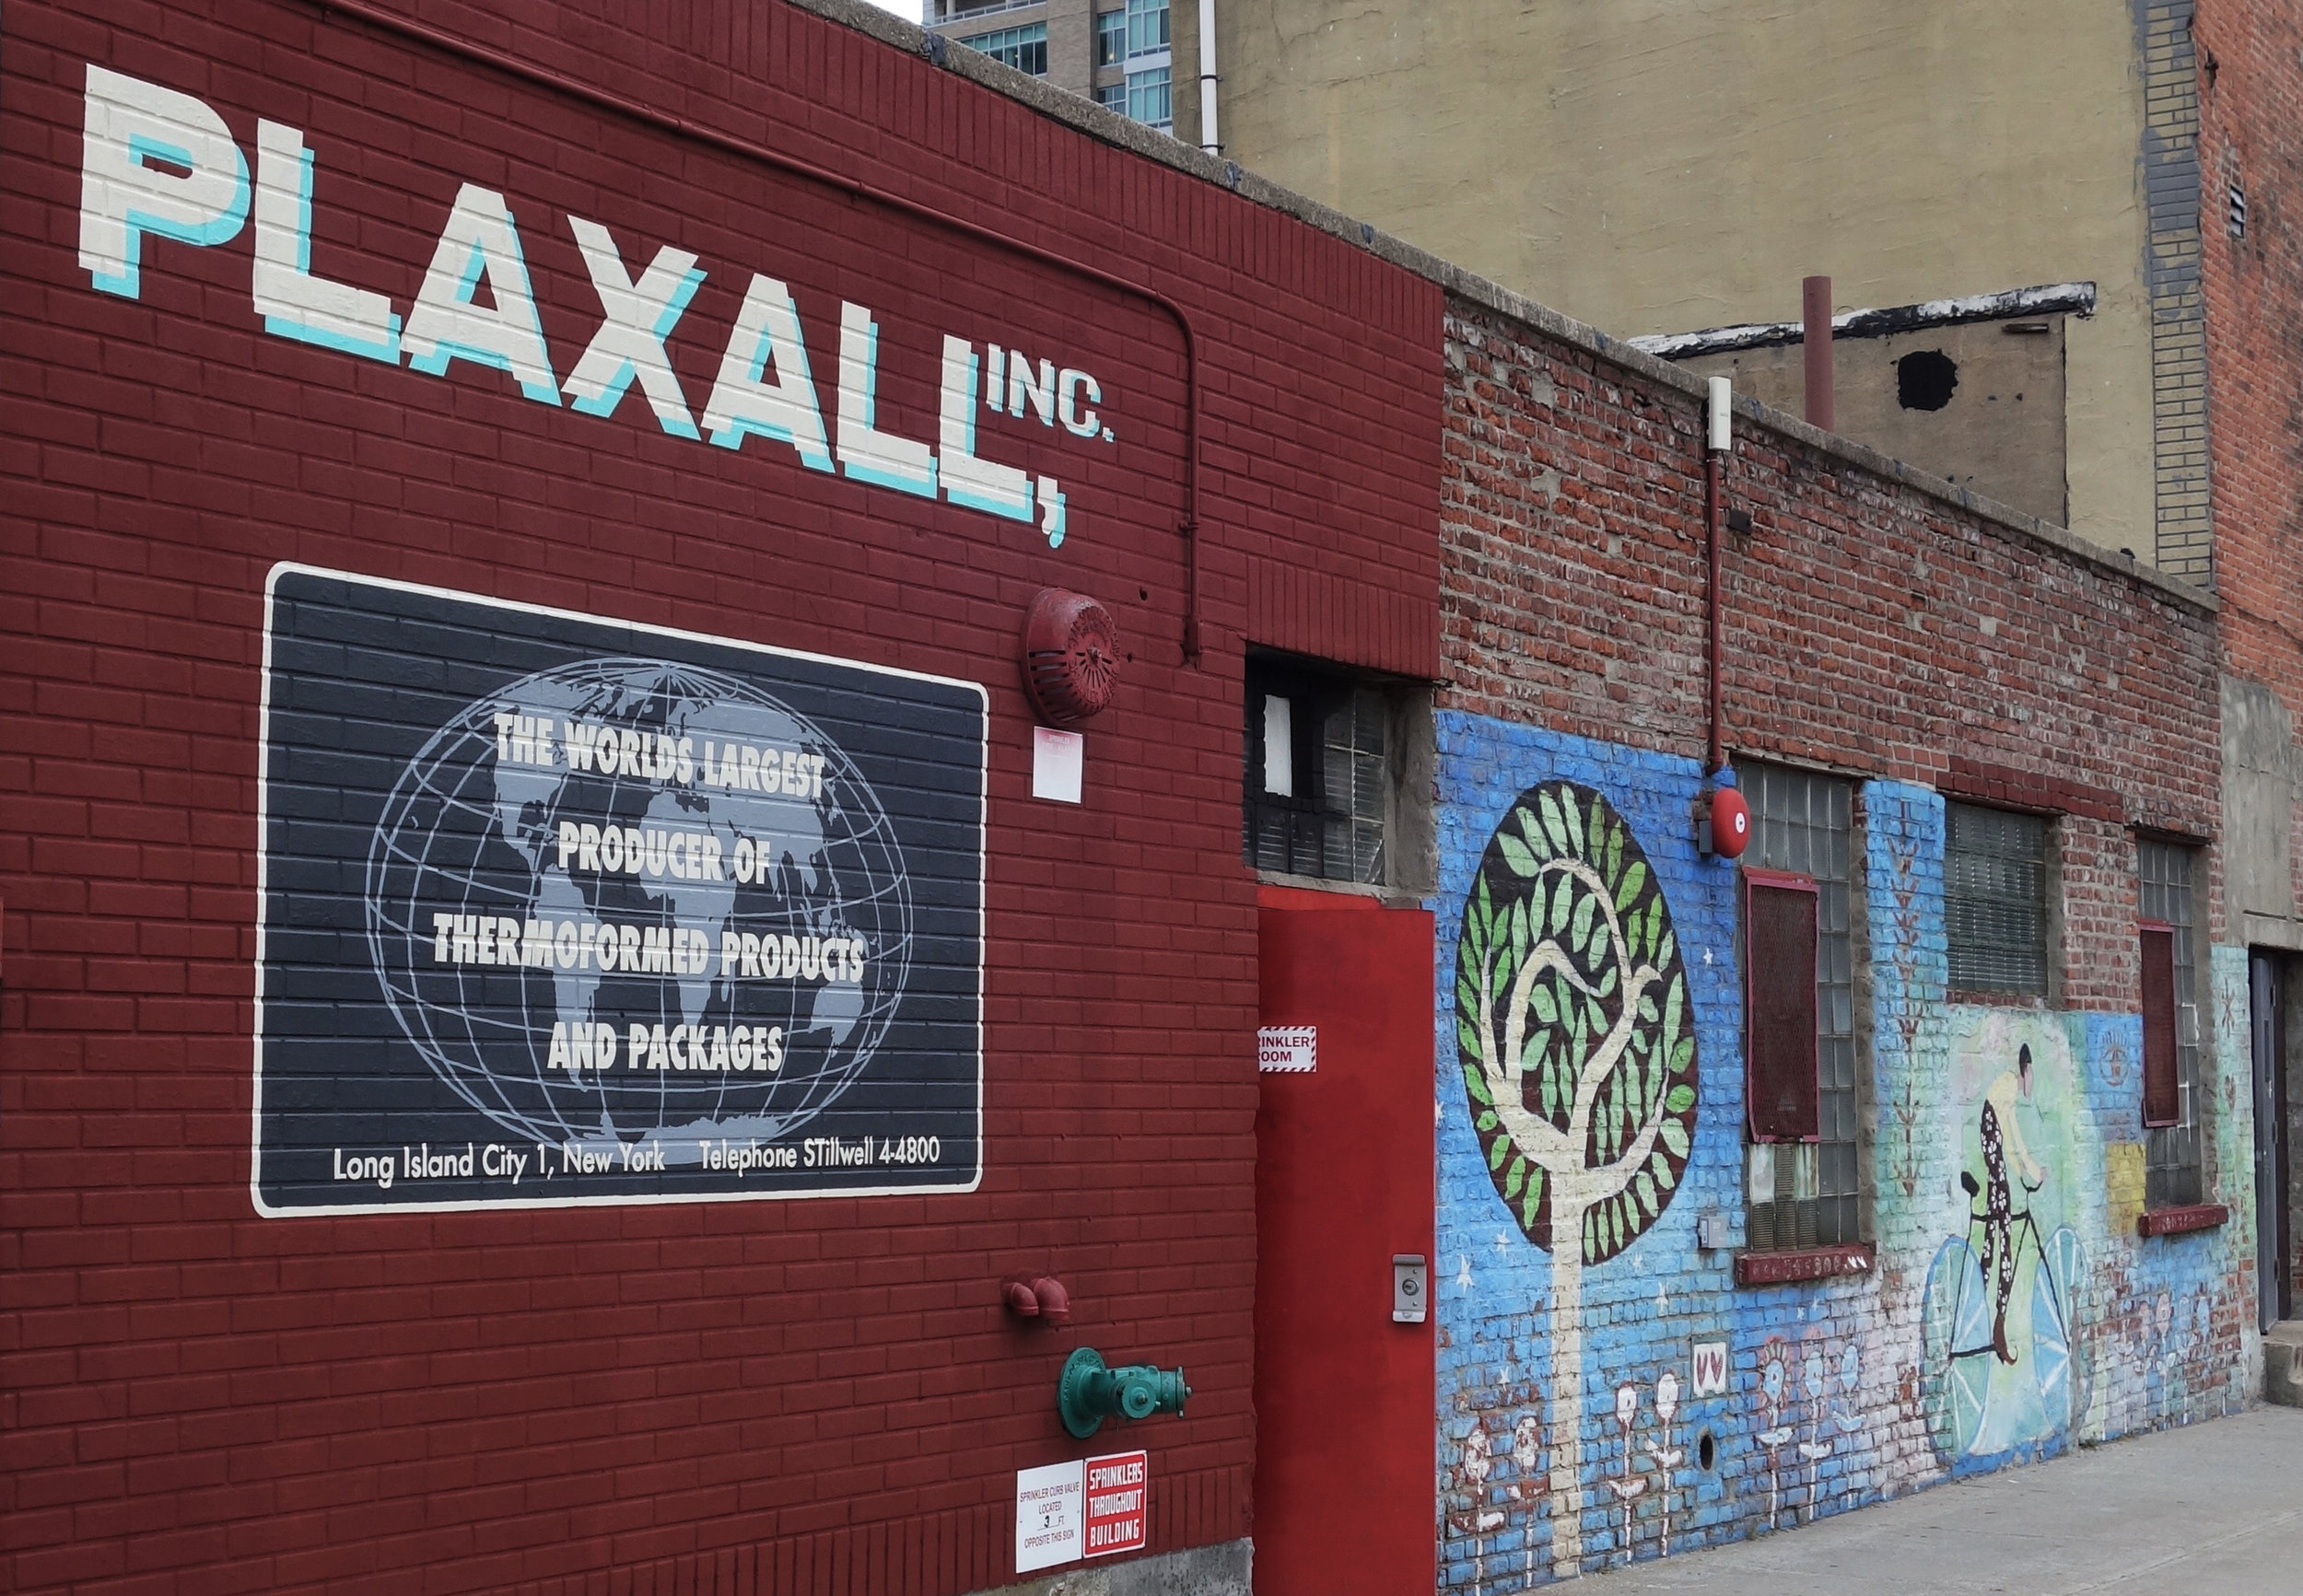 A vintage look sign painted for  Plaxall, Inc  in Long Island City, NY.